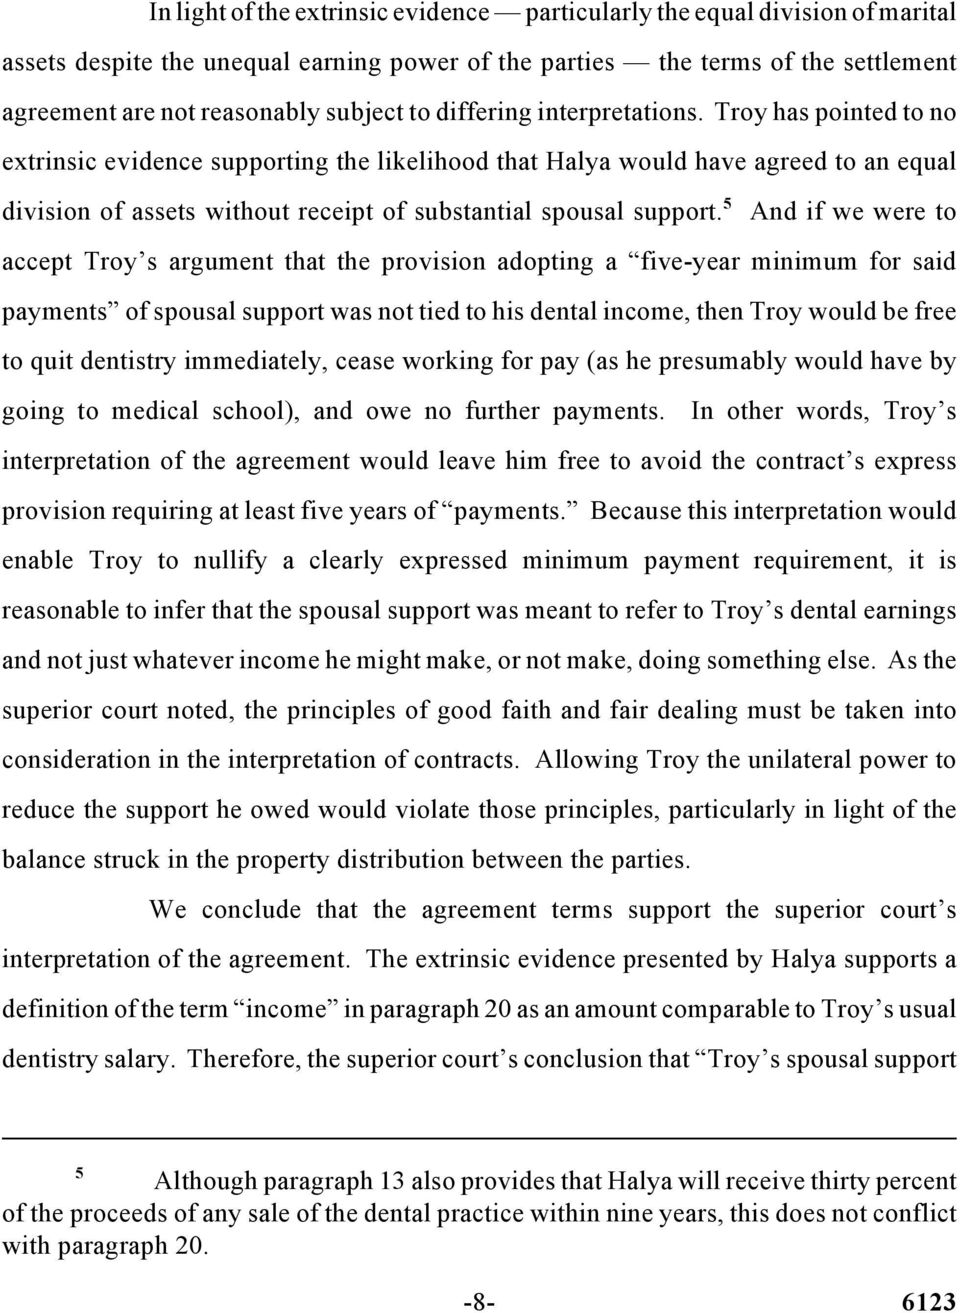 Troy has pointed to no extrinsic evidence supporting the likelihood that Halya would have agreed to an equal 5 division of assets without receipt of substantial spousal support.